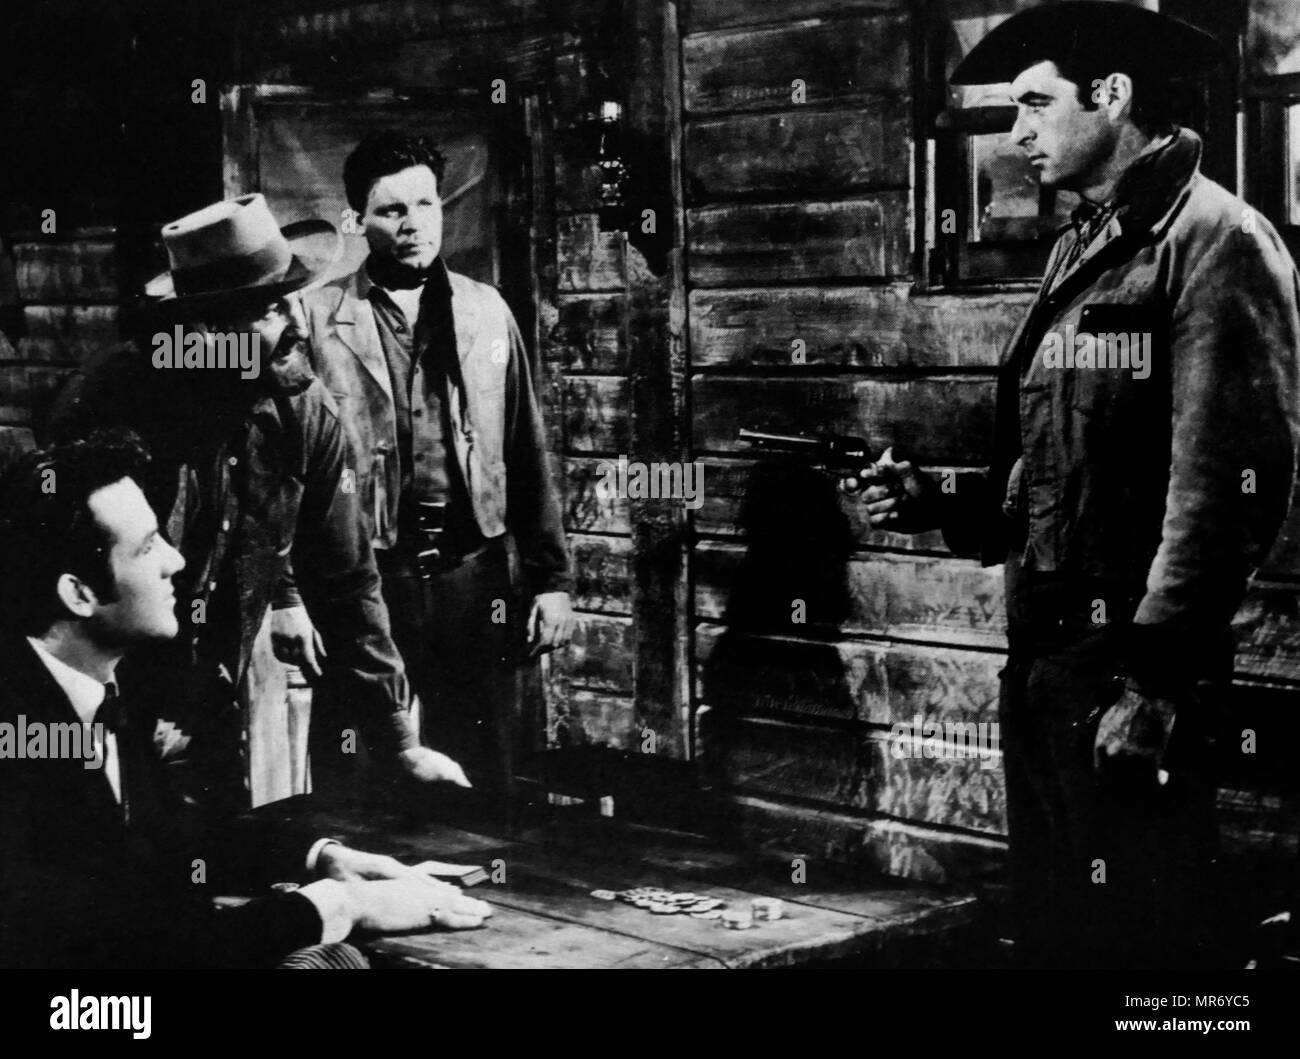 Raw Edge' a 1956 Technicolor Western film directed by John Sherwood starring Rory Calhoun (Right), Yvonne de Carlo, Mara Corday, Rex Reason, Neville Brand. It marked the movie debut of John Gavin under the name 'John Gilmore'. - Stock Image